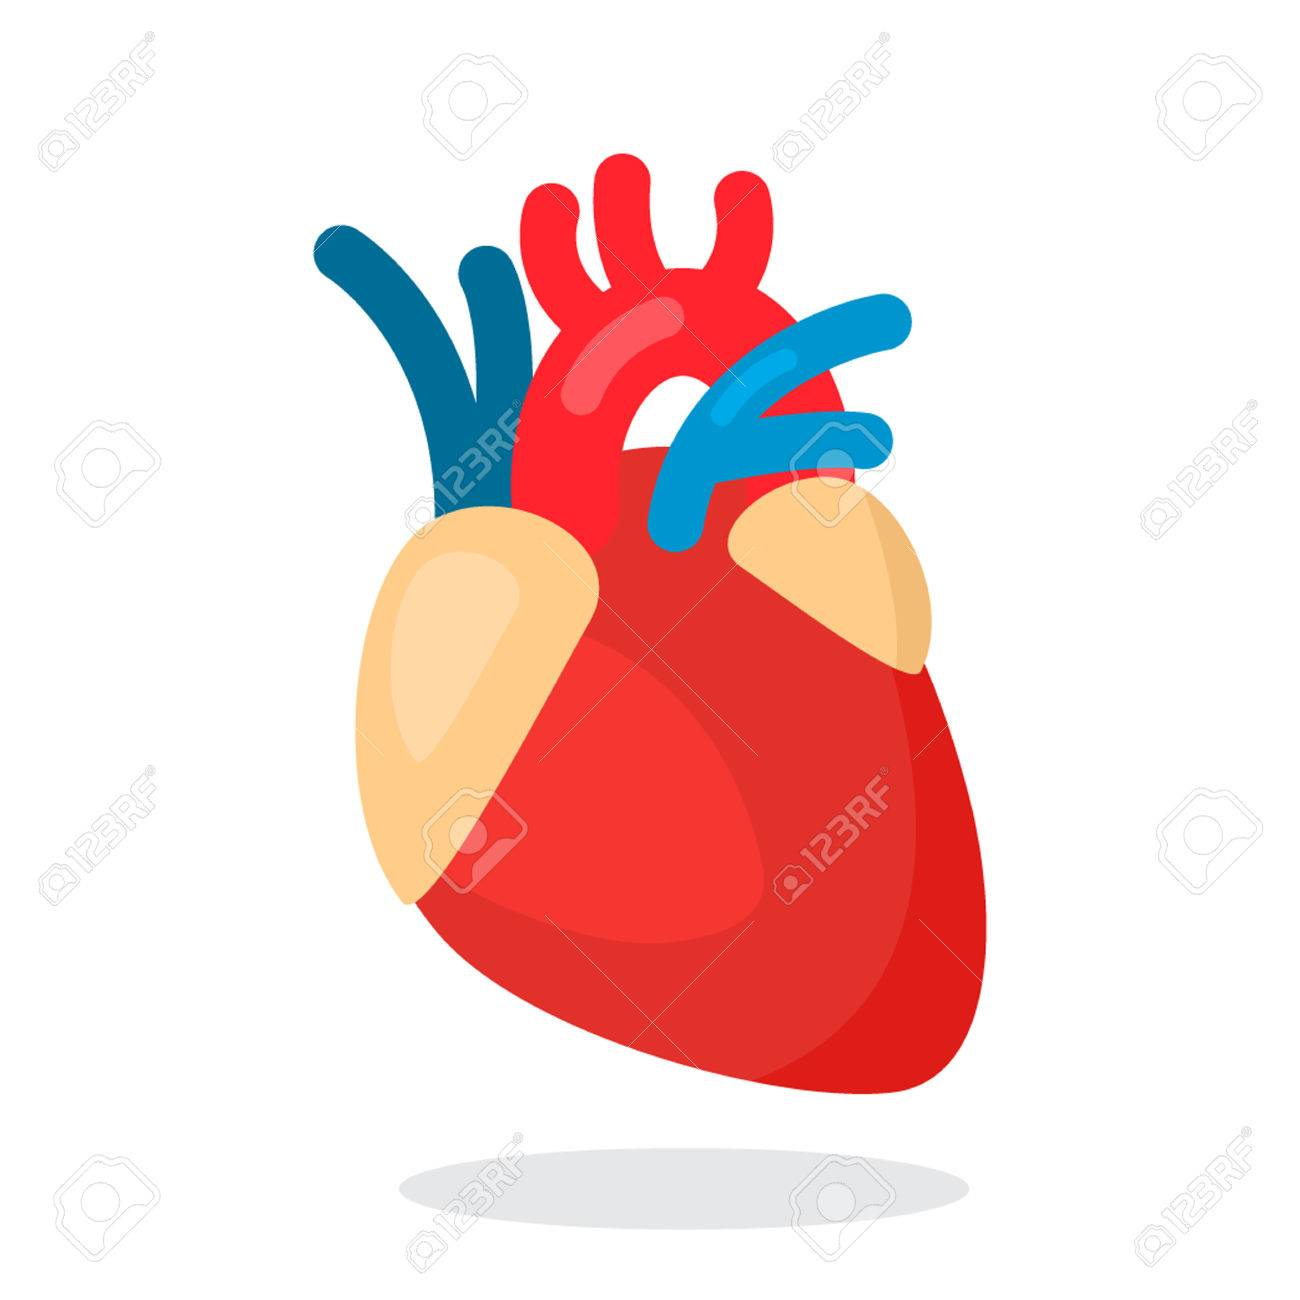 human heart anatomy heart medical science vector illustration rh 123rf com human heart vector art human heart vector image